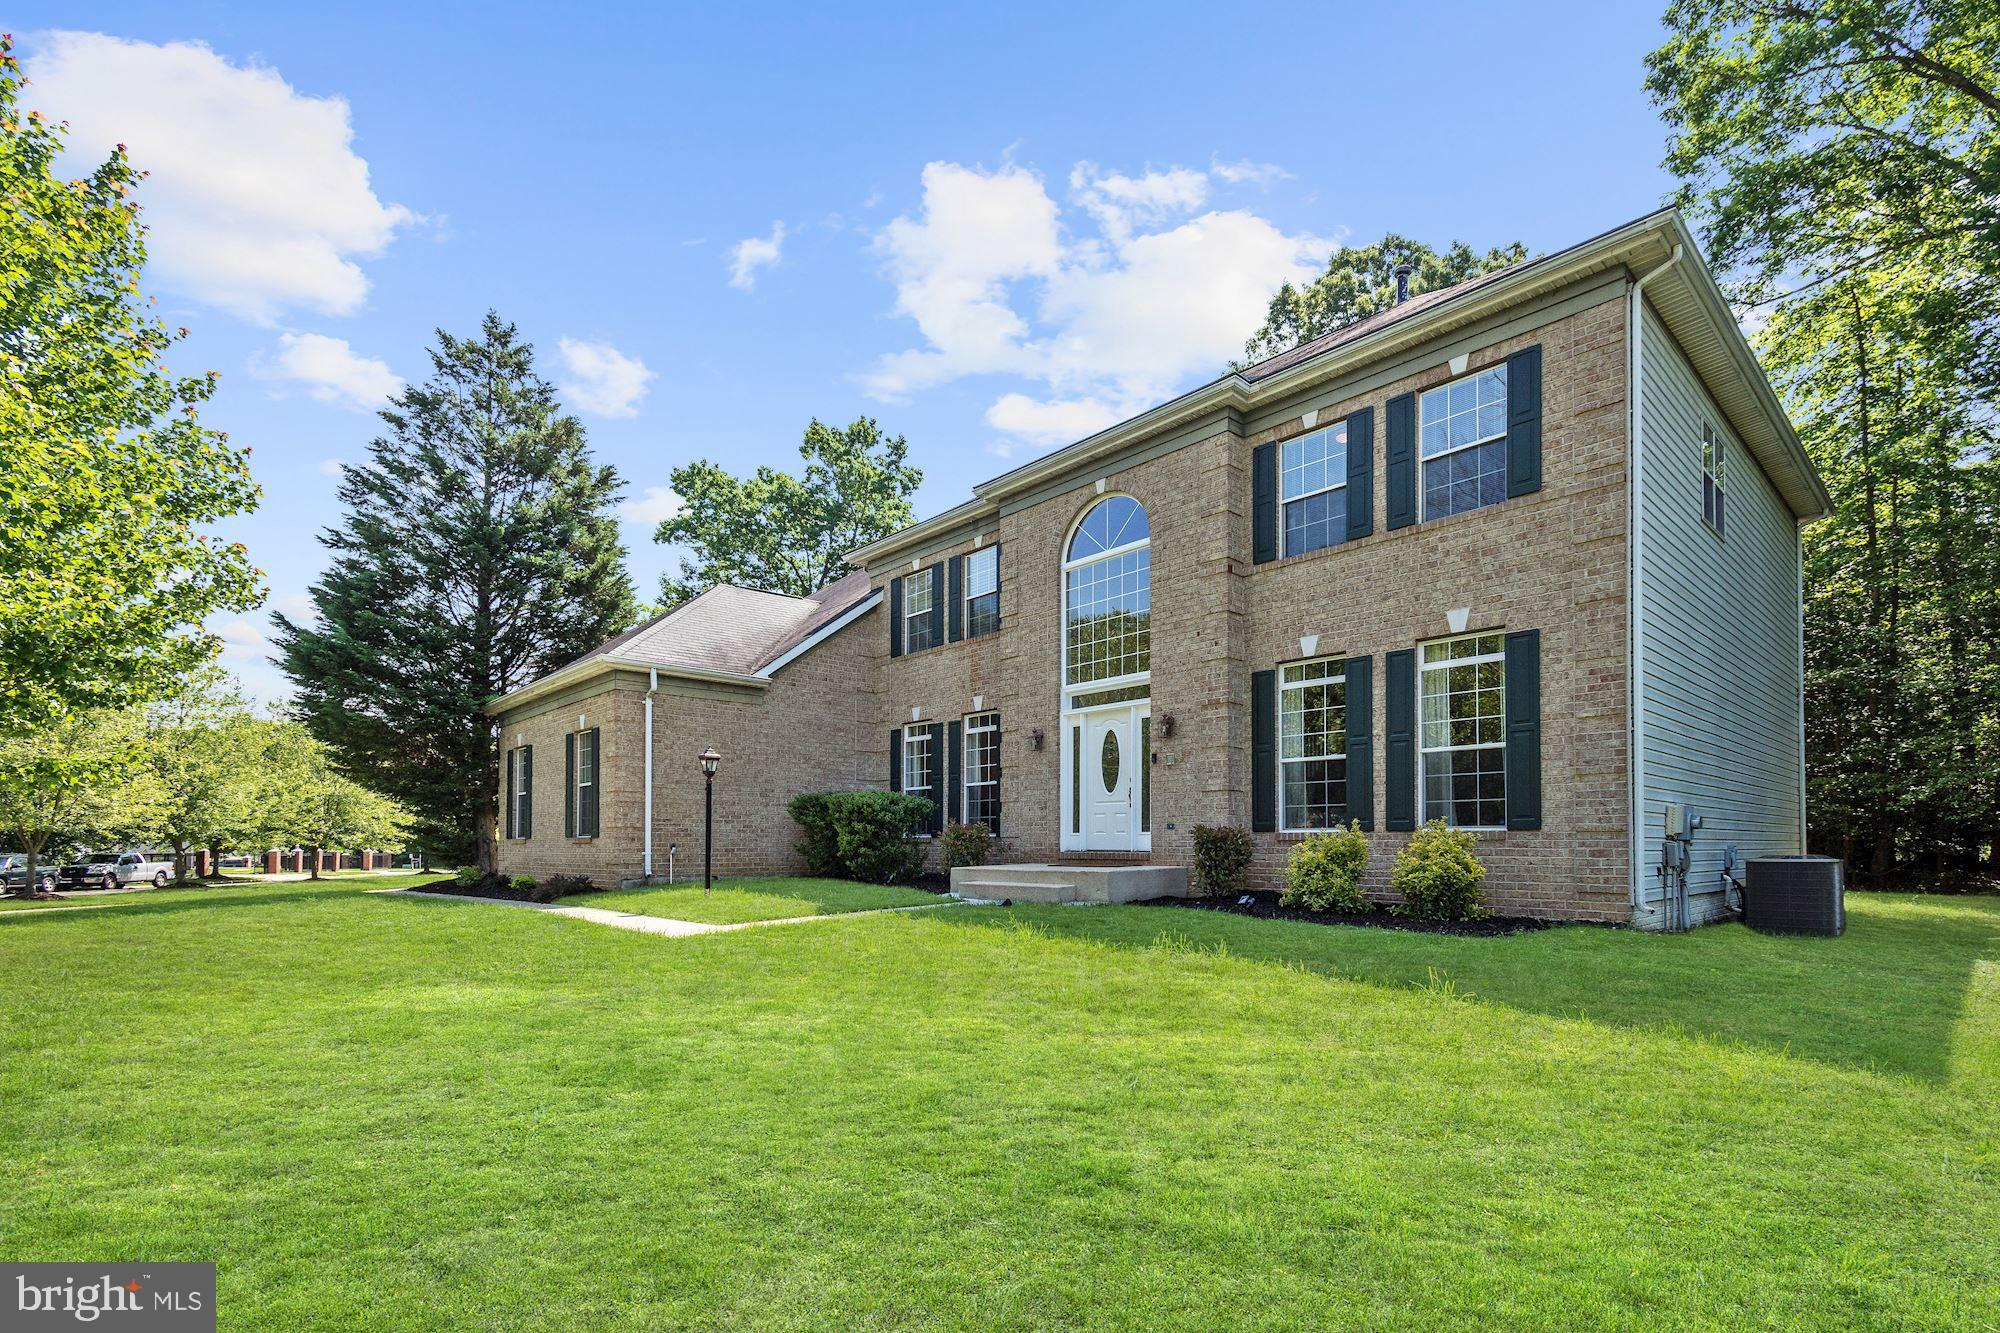 109 WHISTLING WOOD COURT, ACCOKEEK, MD 20607